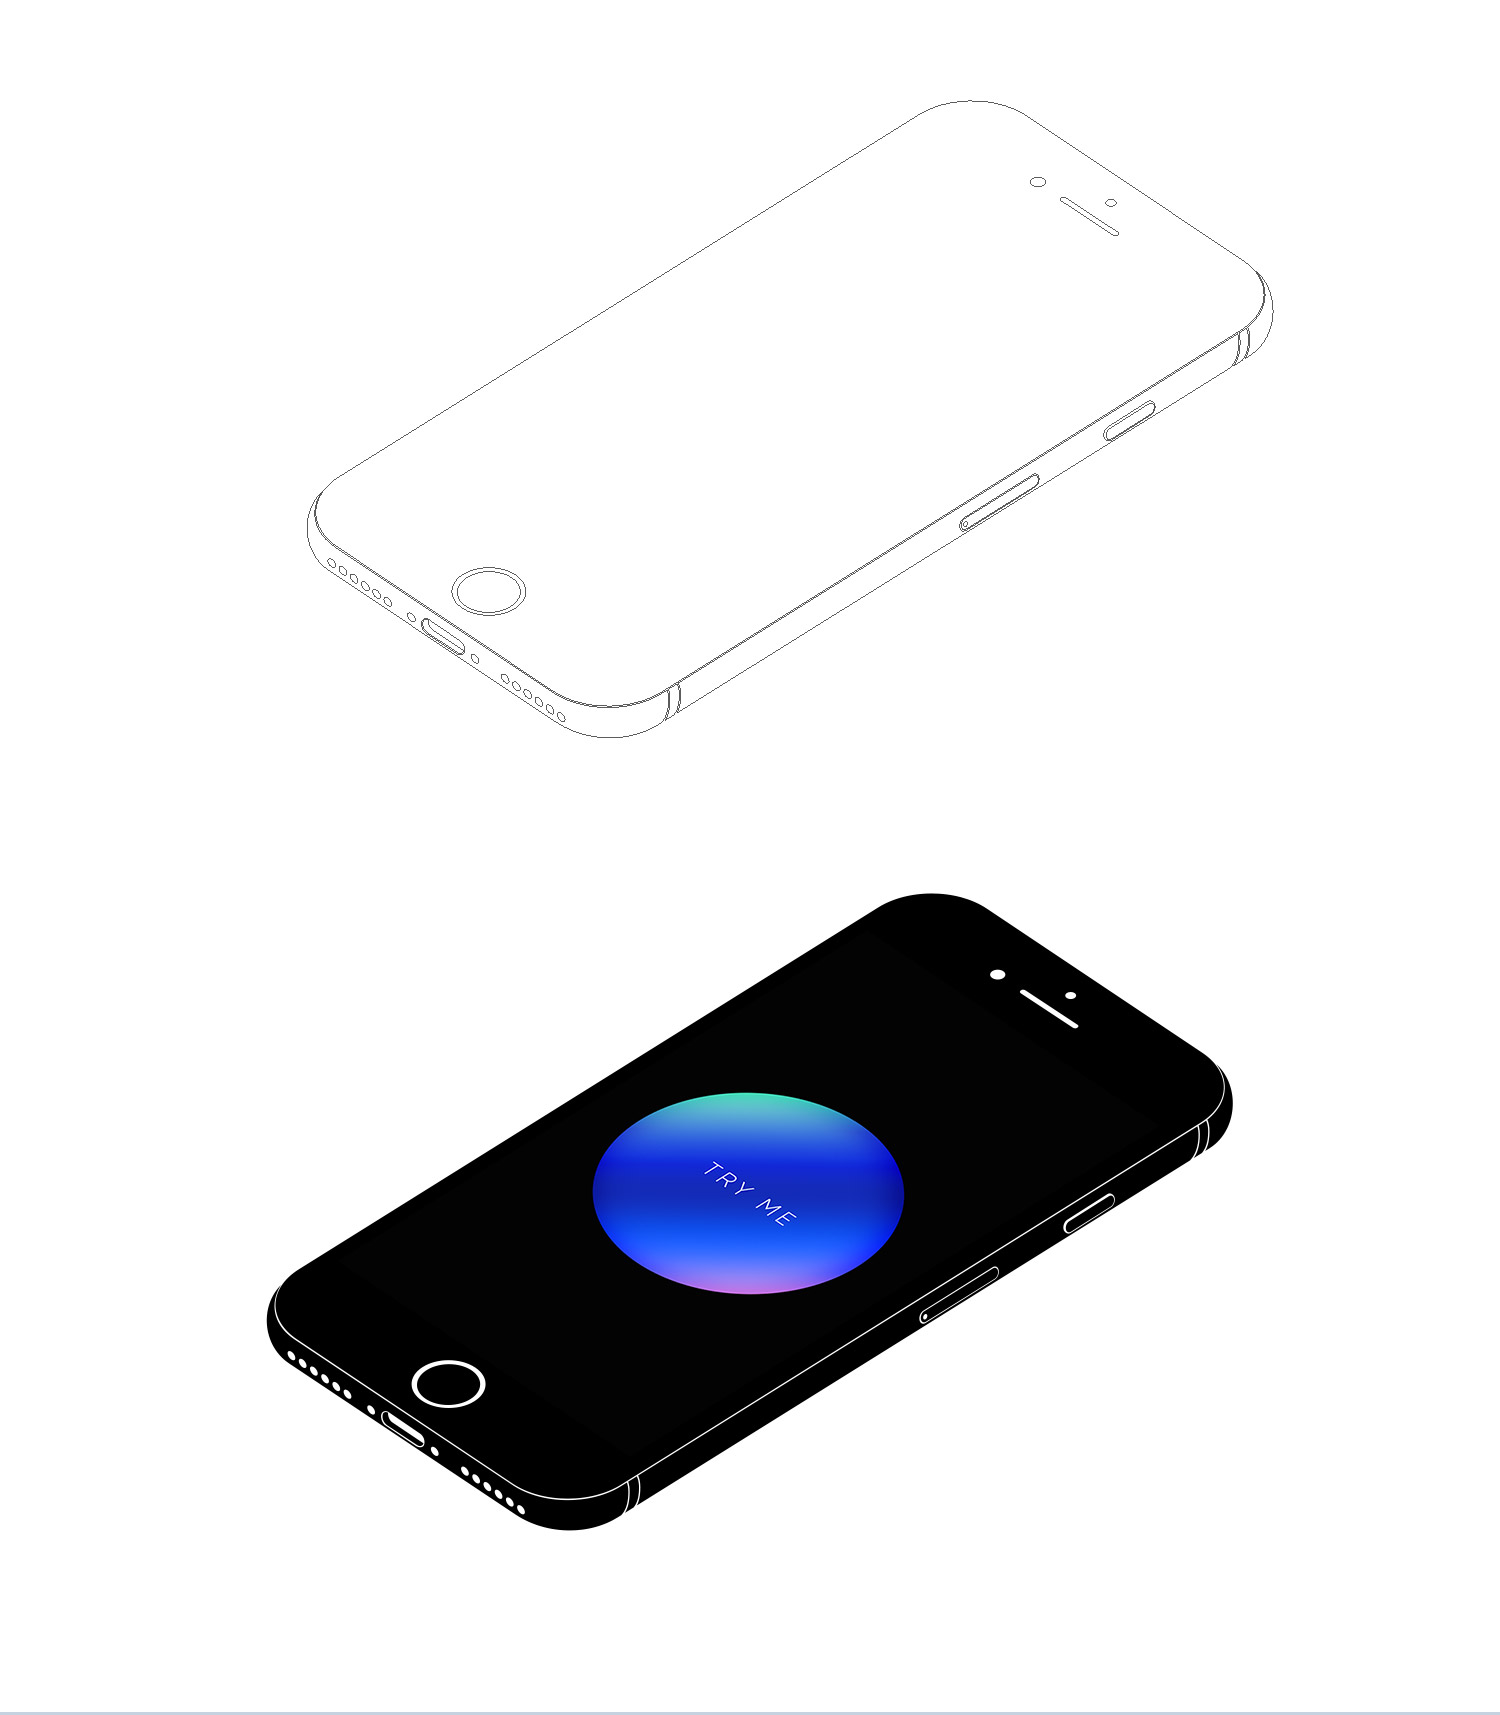 iPhone 7 Isometric Mockup Presentation - 3